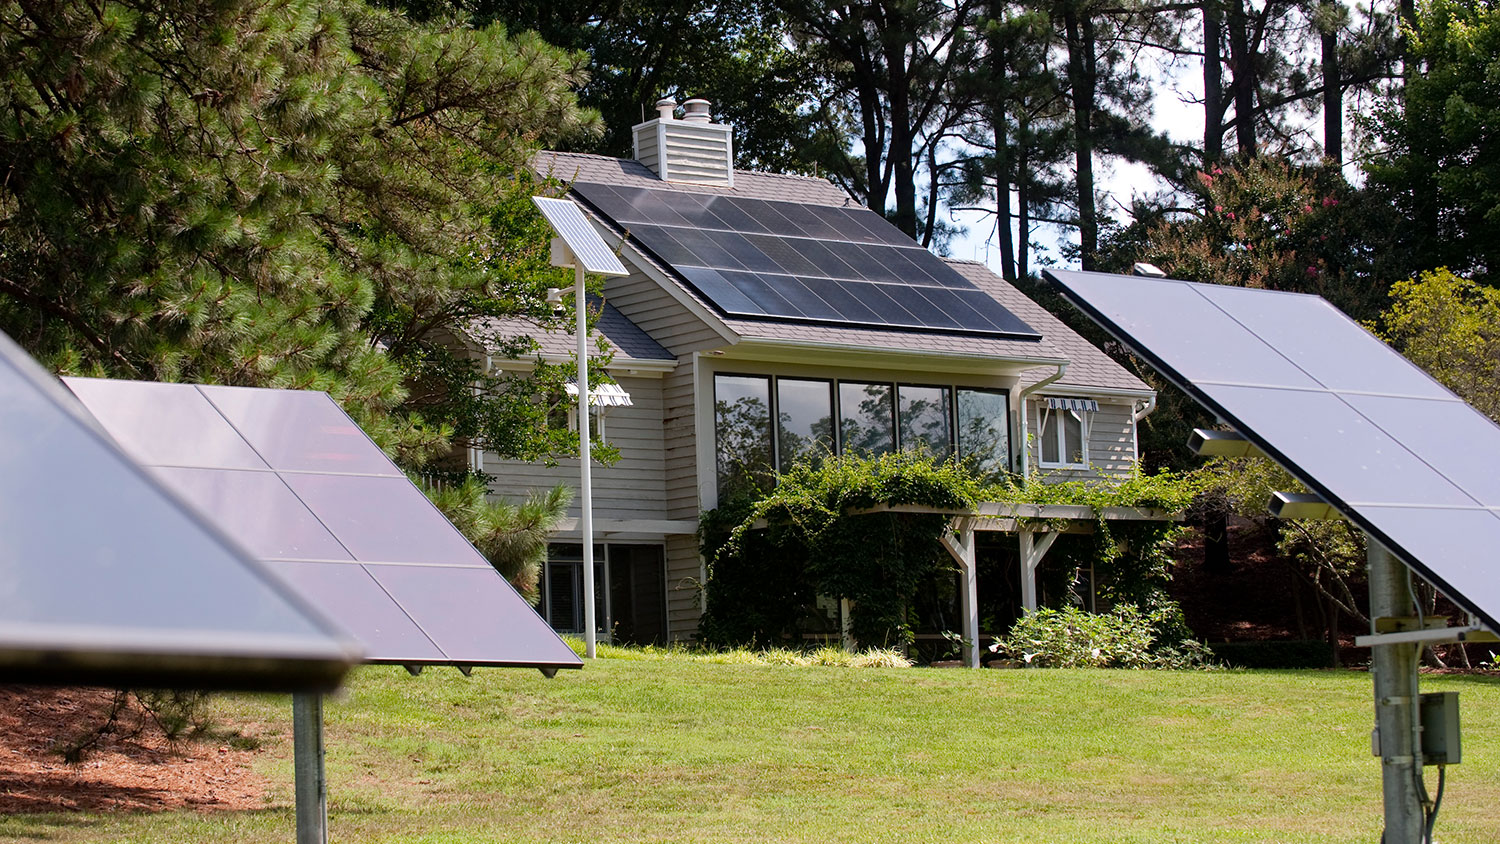 The NC State Solar House